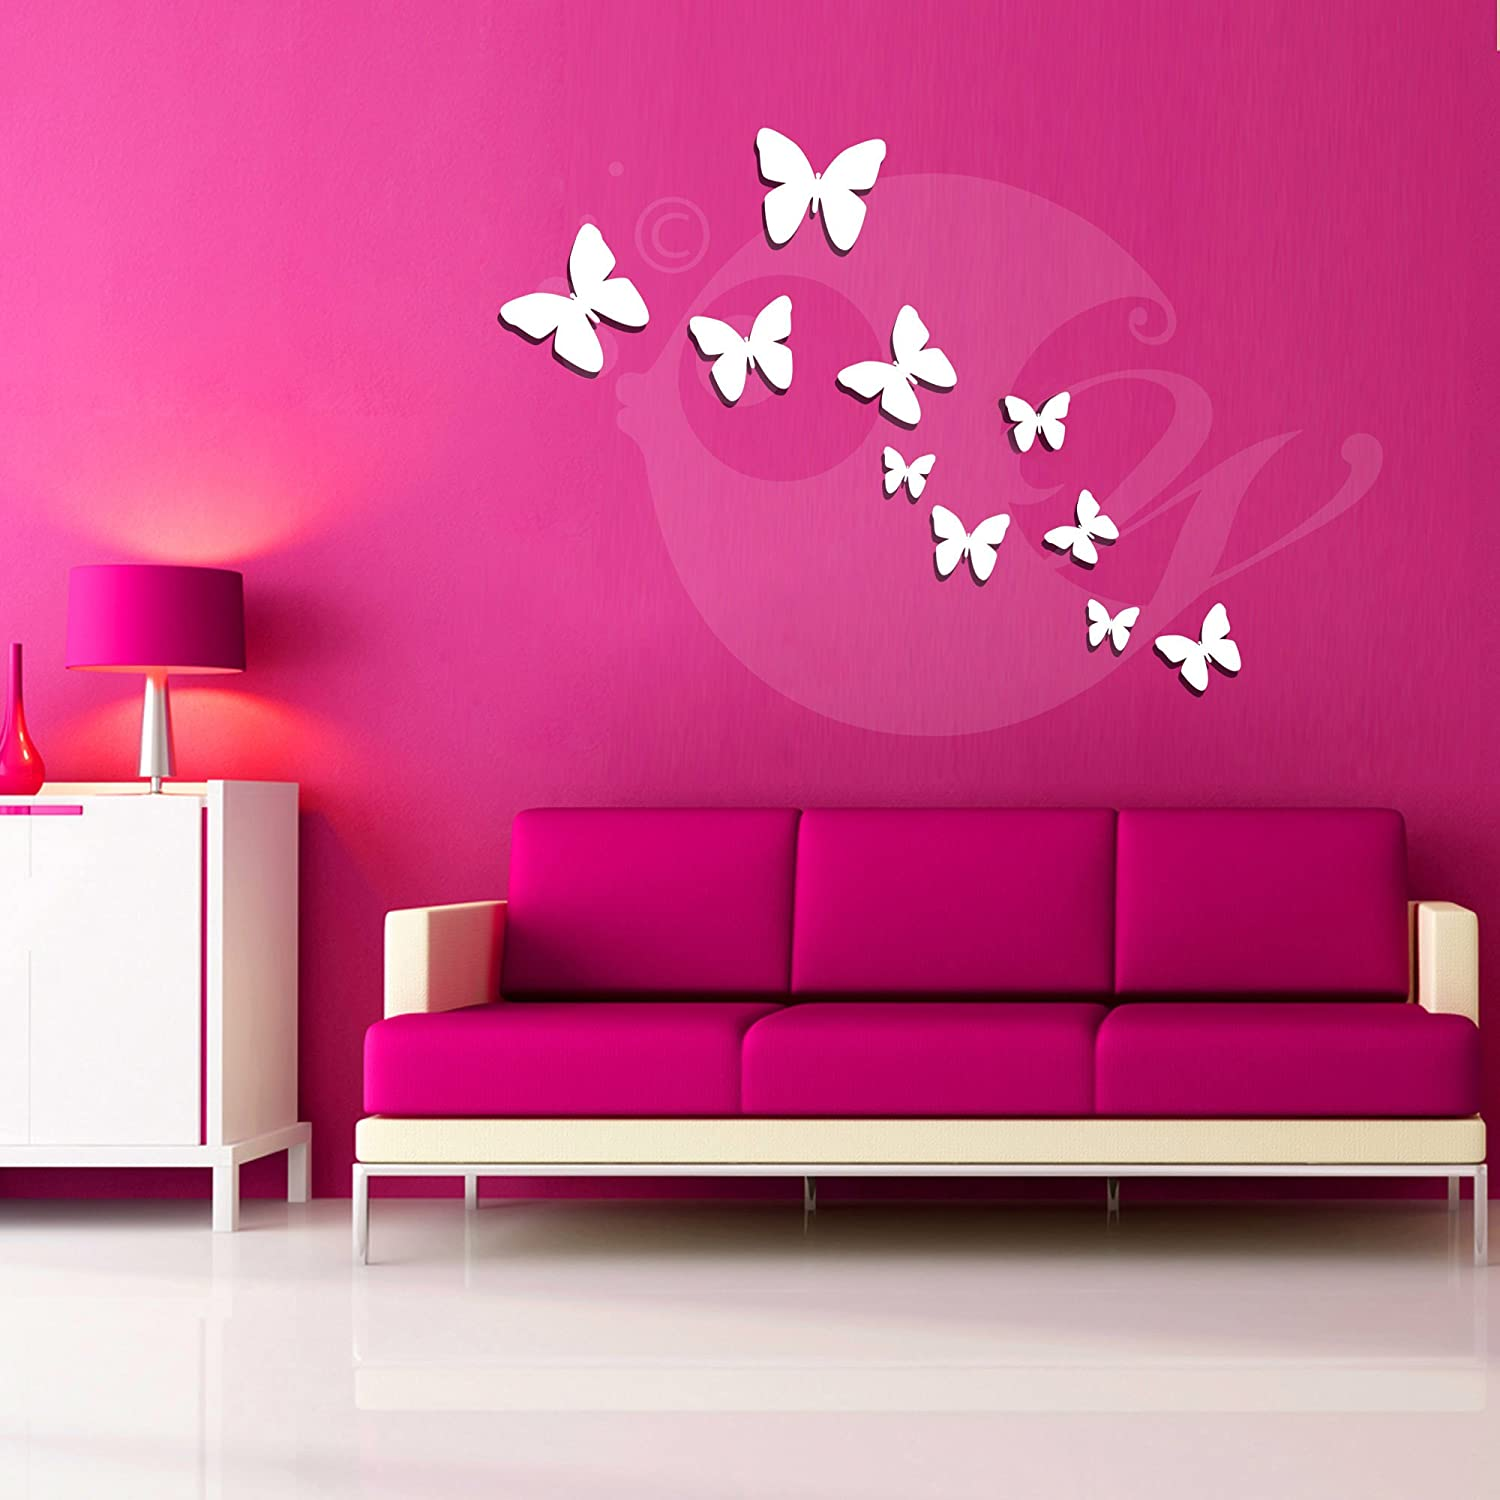 Buy Butterflies Acrylic 3D Wall Art Sticker (10 Pieces) Online At Low  Prices In India   Amazon.in Part 25